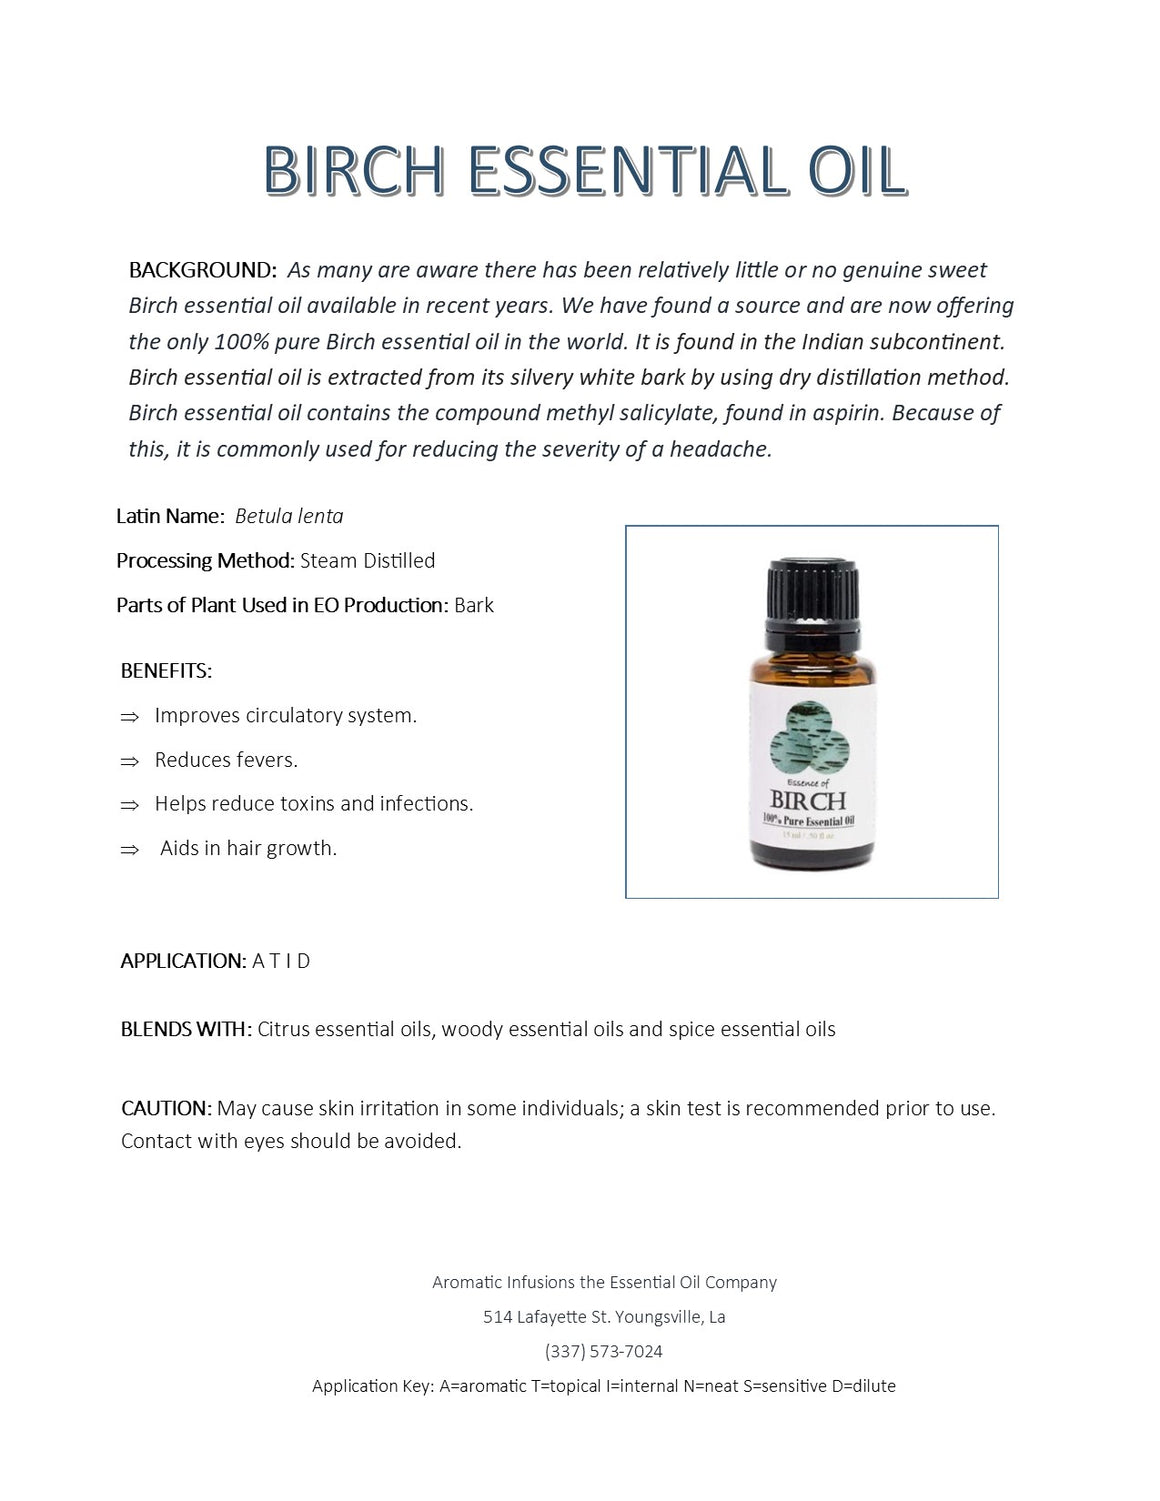 Birch Essential Oil 15ml - Aromatic Infusions